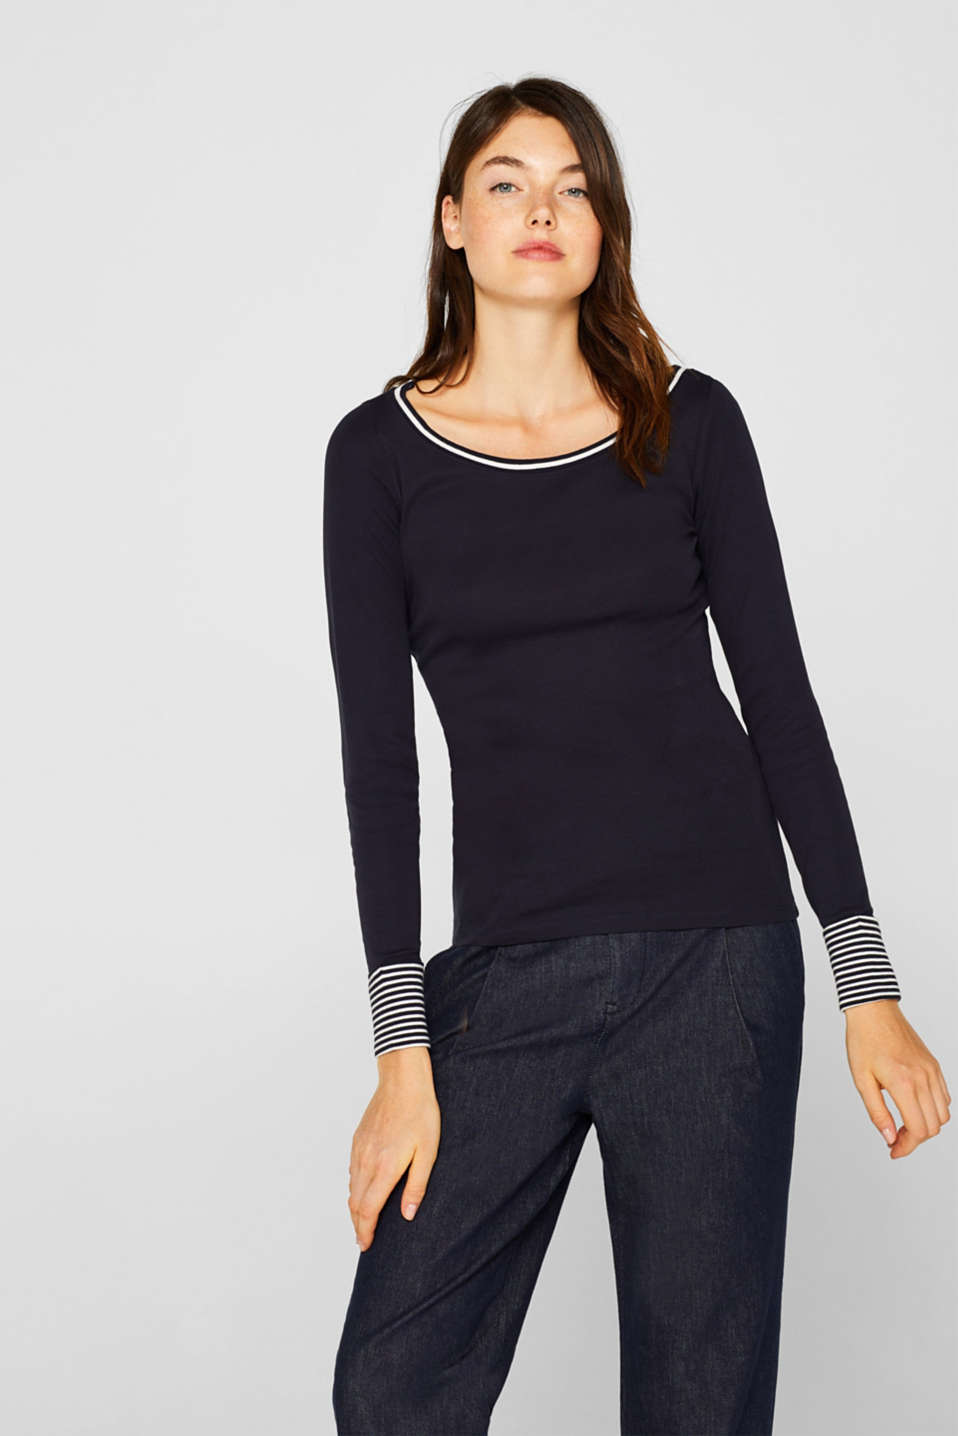 Esprit - Long sleeve top with striped borders, 100% cotton